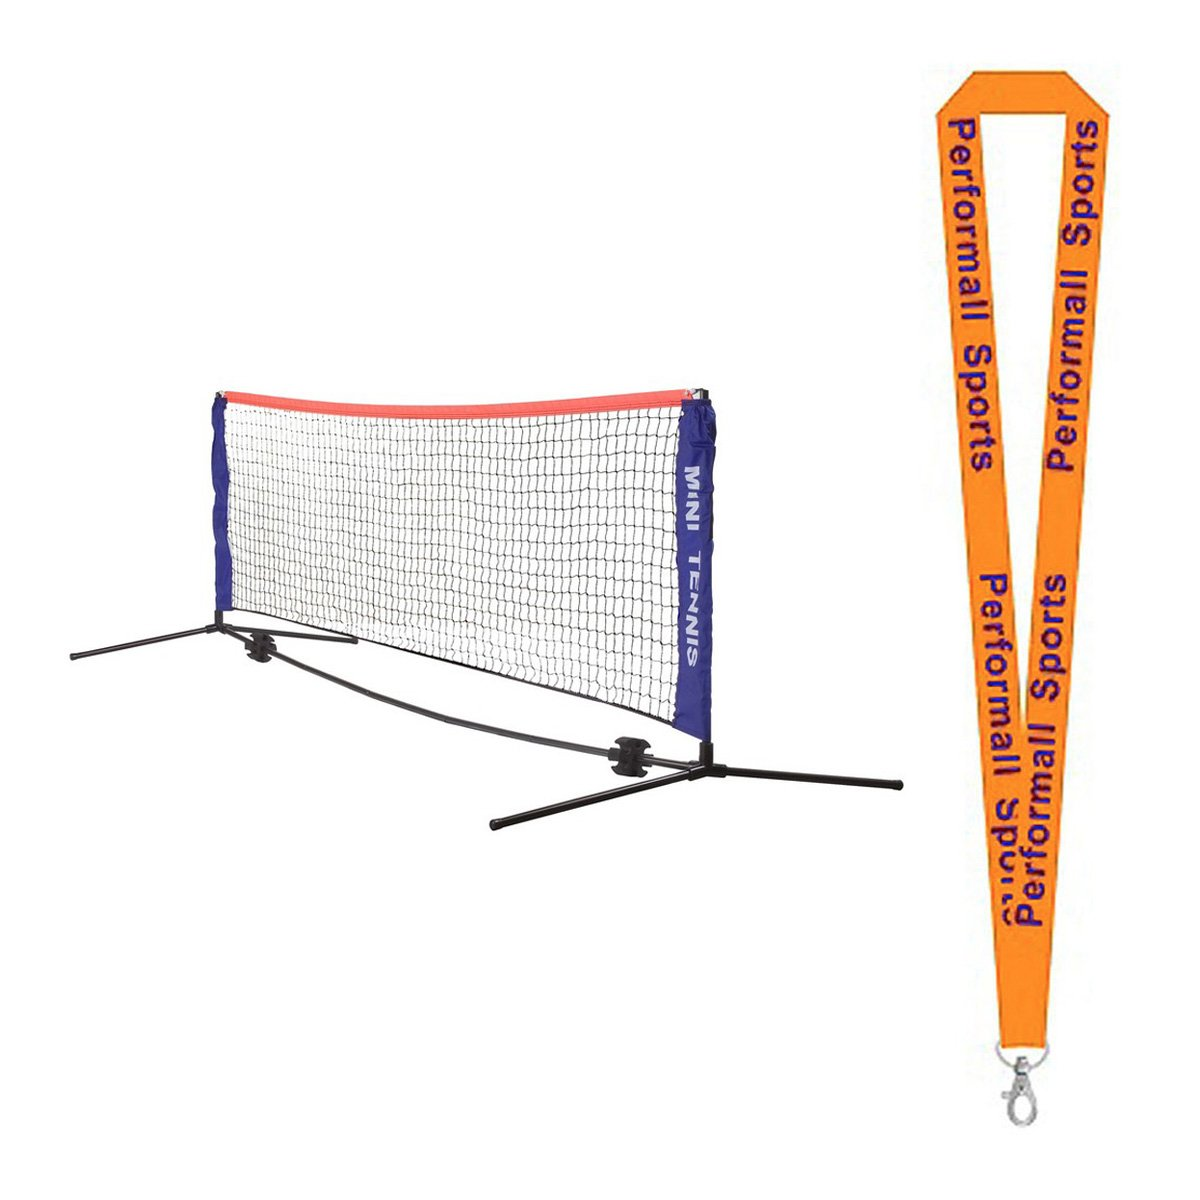 Champion Sports Mini Tennis Net Set Blue / Black with 1 Performall Lanyard MTNSET-1P by Performall Sports Table Tennis